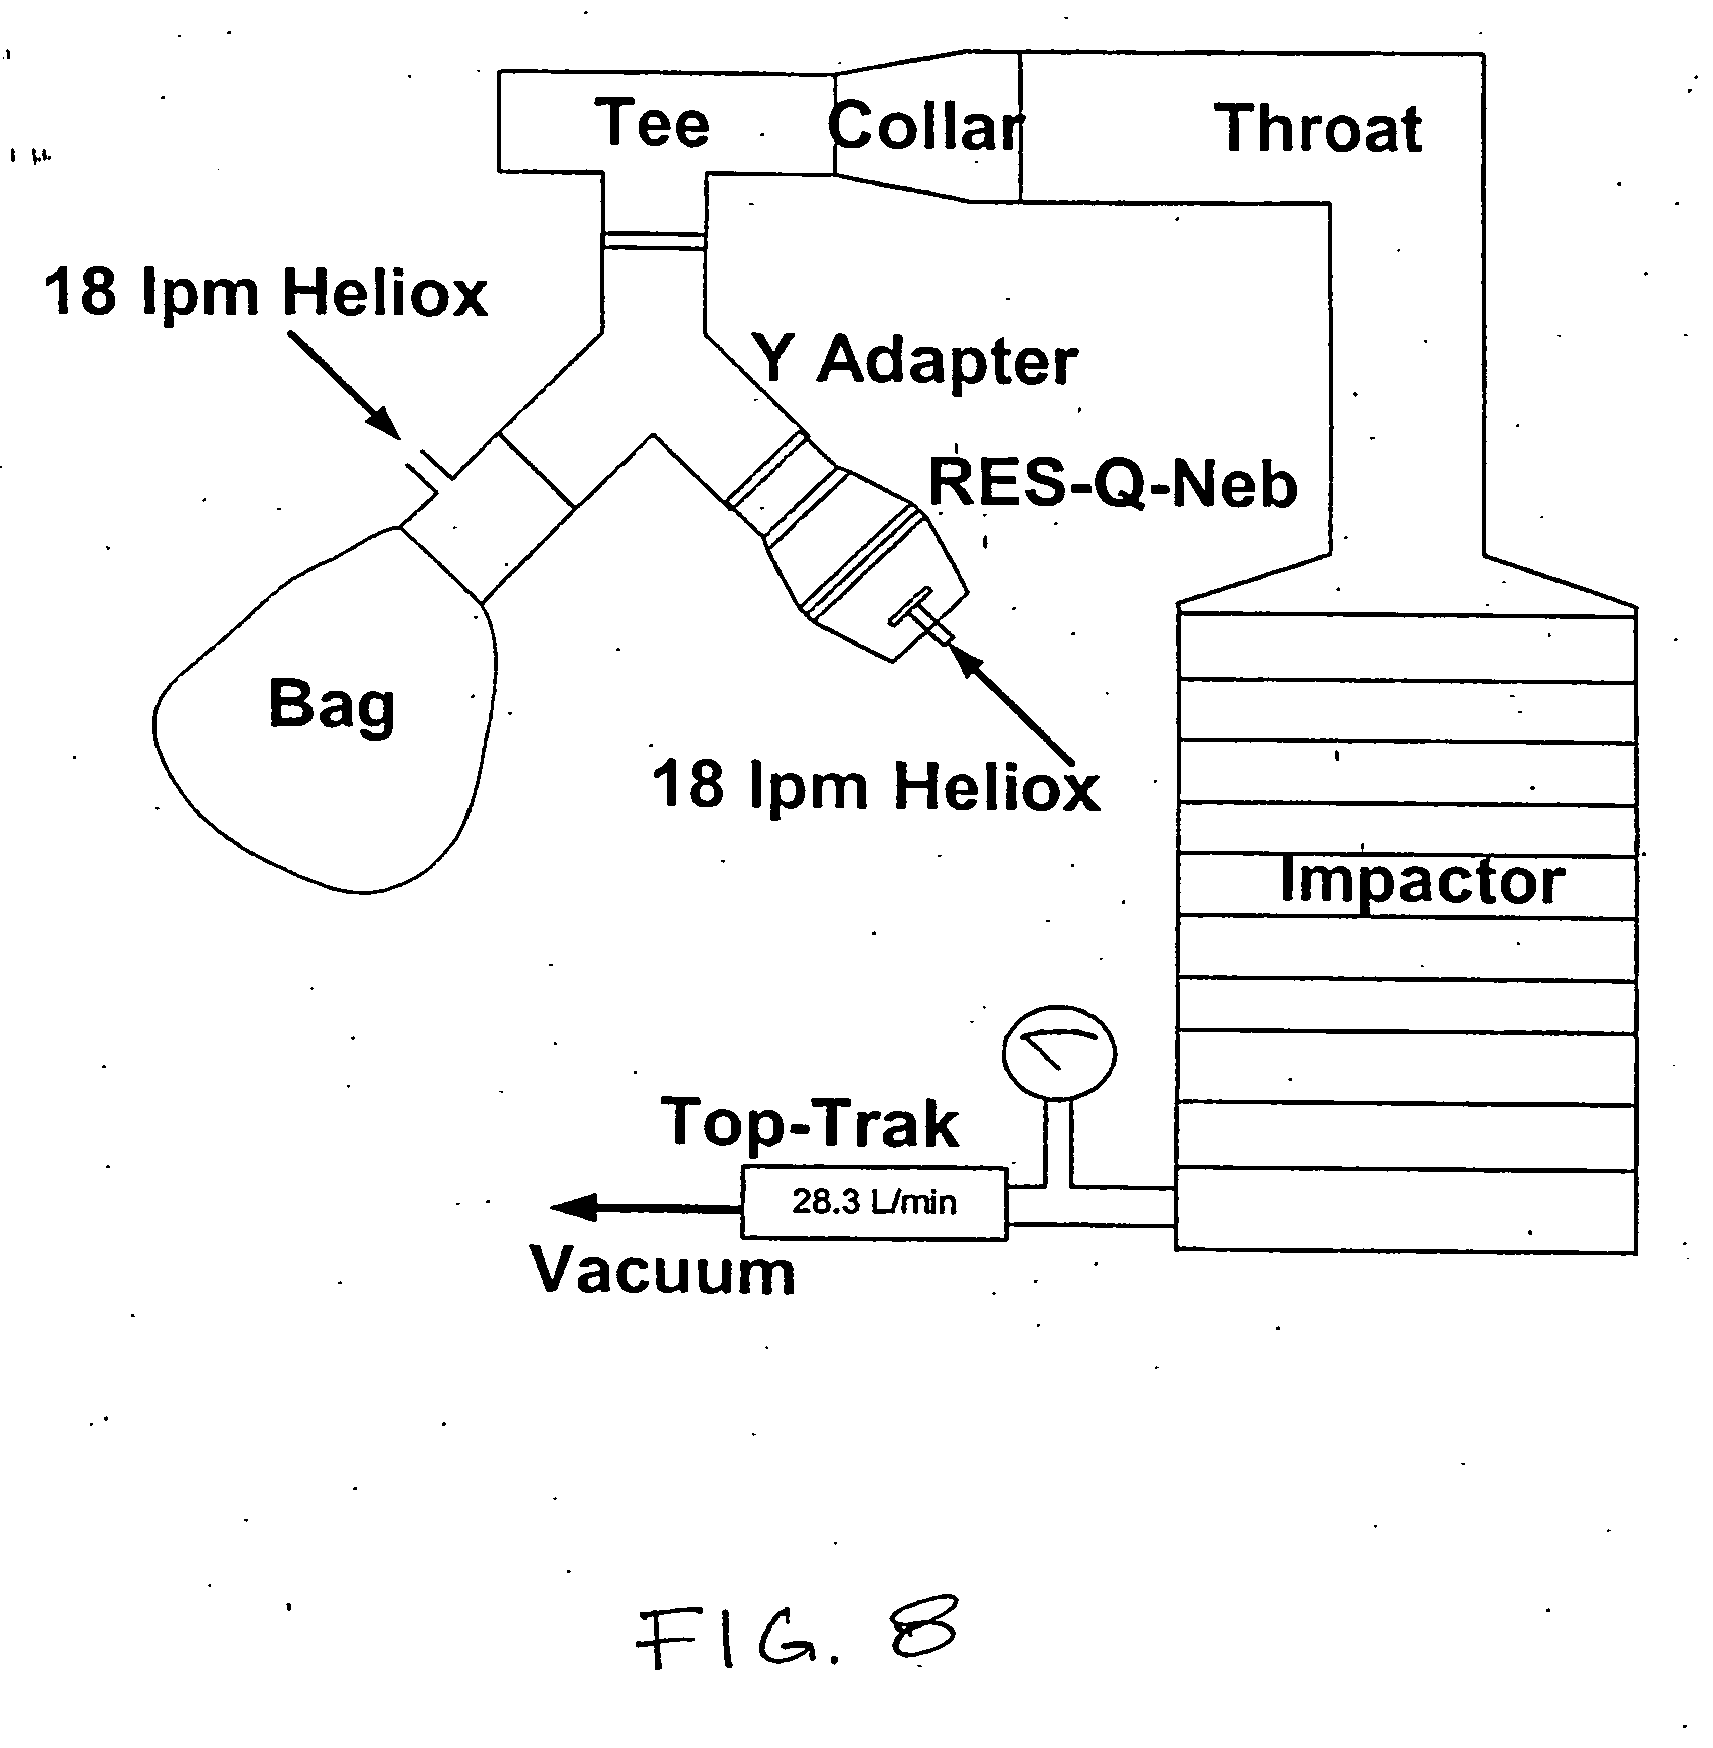 How to deliver heliox - Patent Drawing